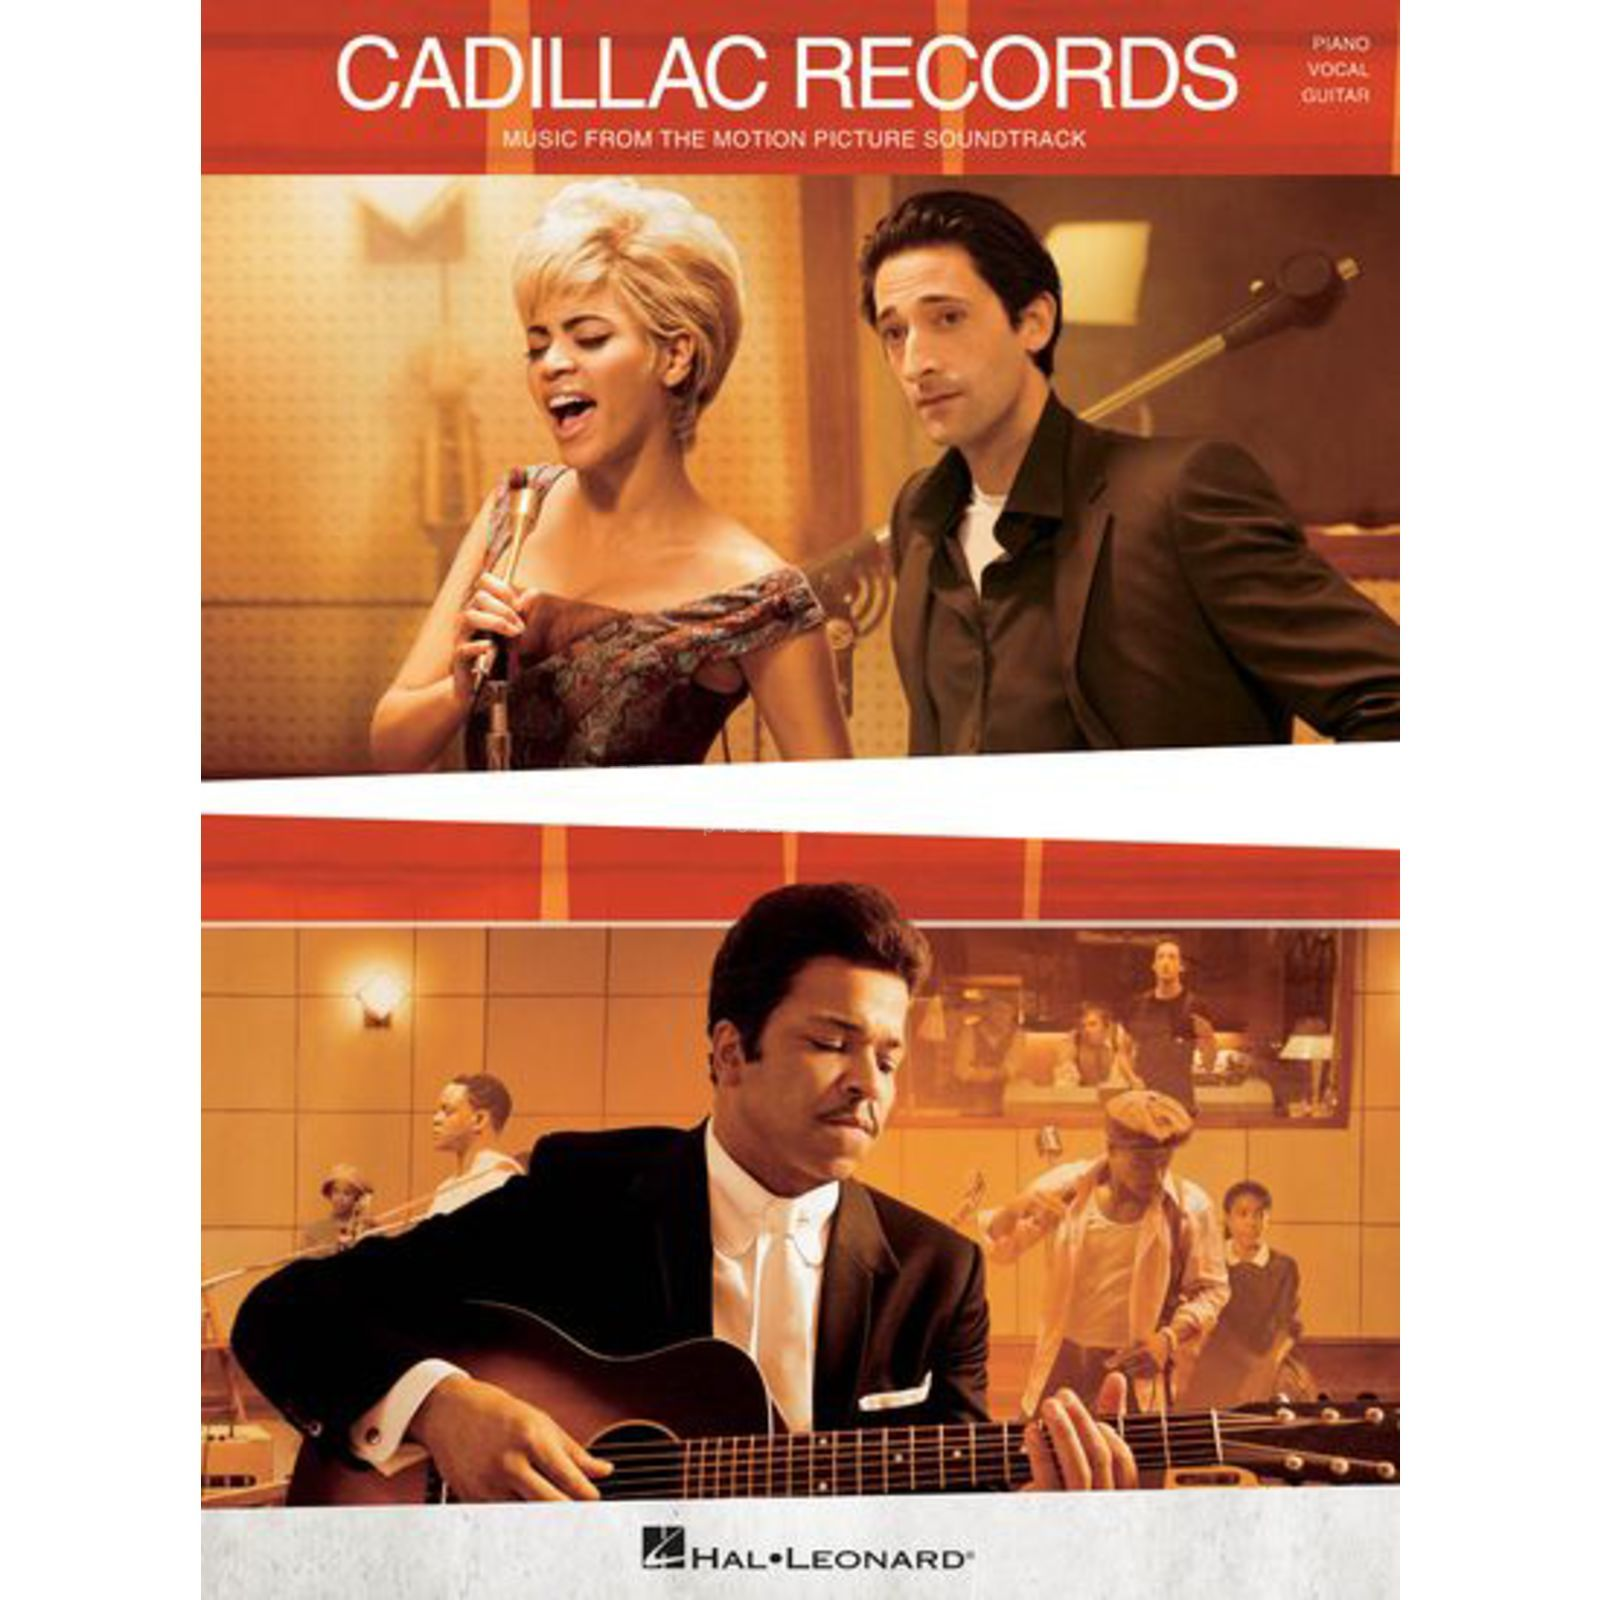 Hal Leonard Cadillac Records - Music From The Motion Picture Soundtrack Produktbillede